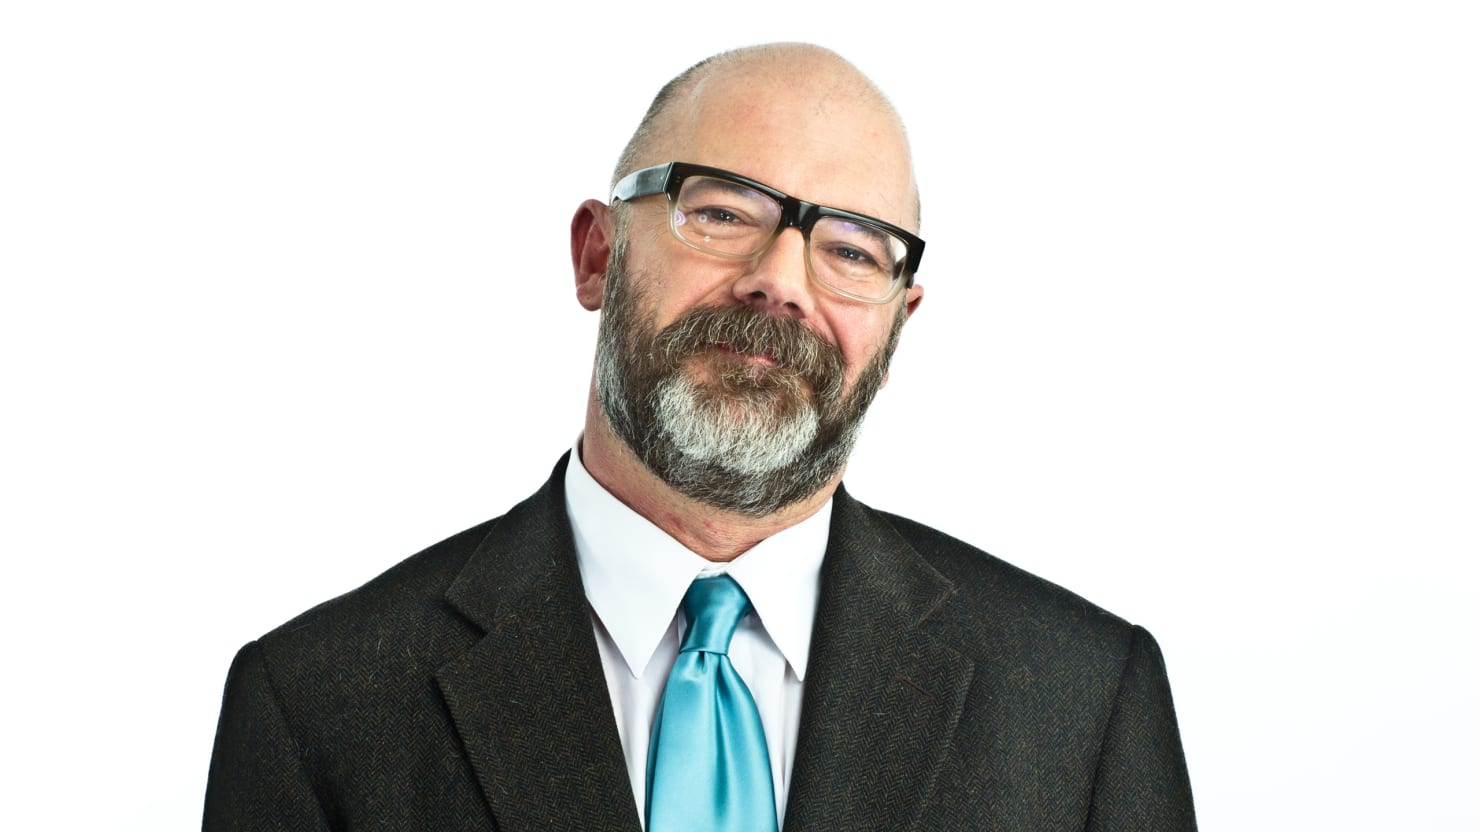 end gay culture andrew sullivan essay Gay culture and the riddle of andrew sullivan share on facebook share on twitter share email print the end of gay culture is an eye-opening essay.